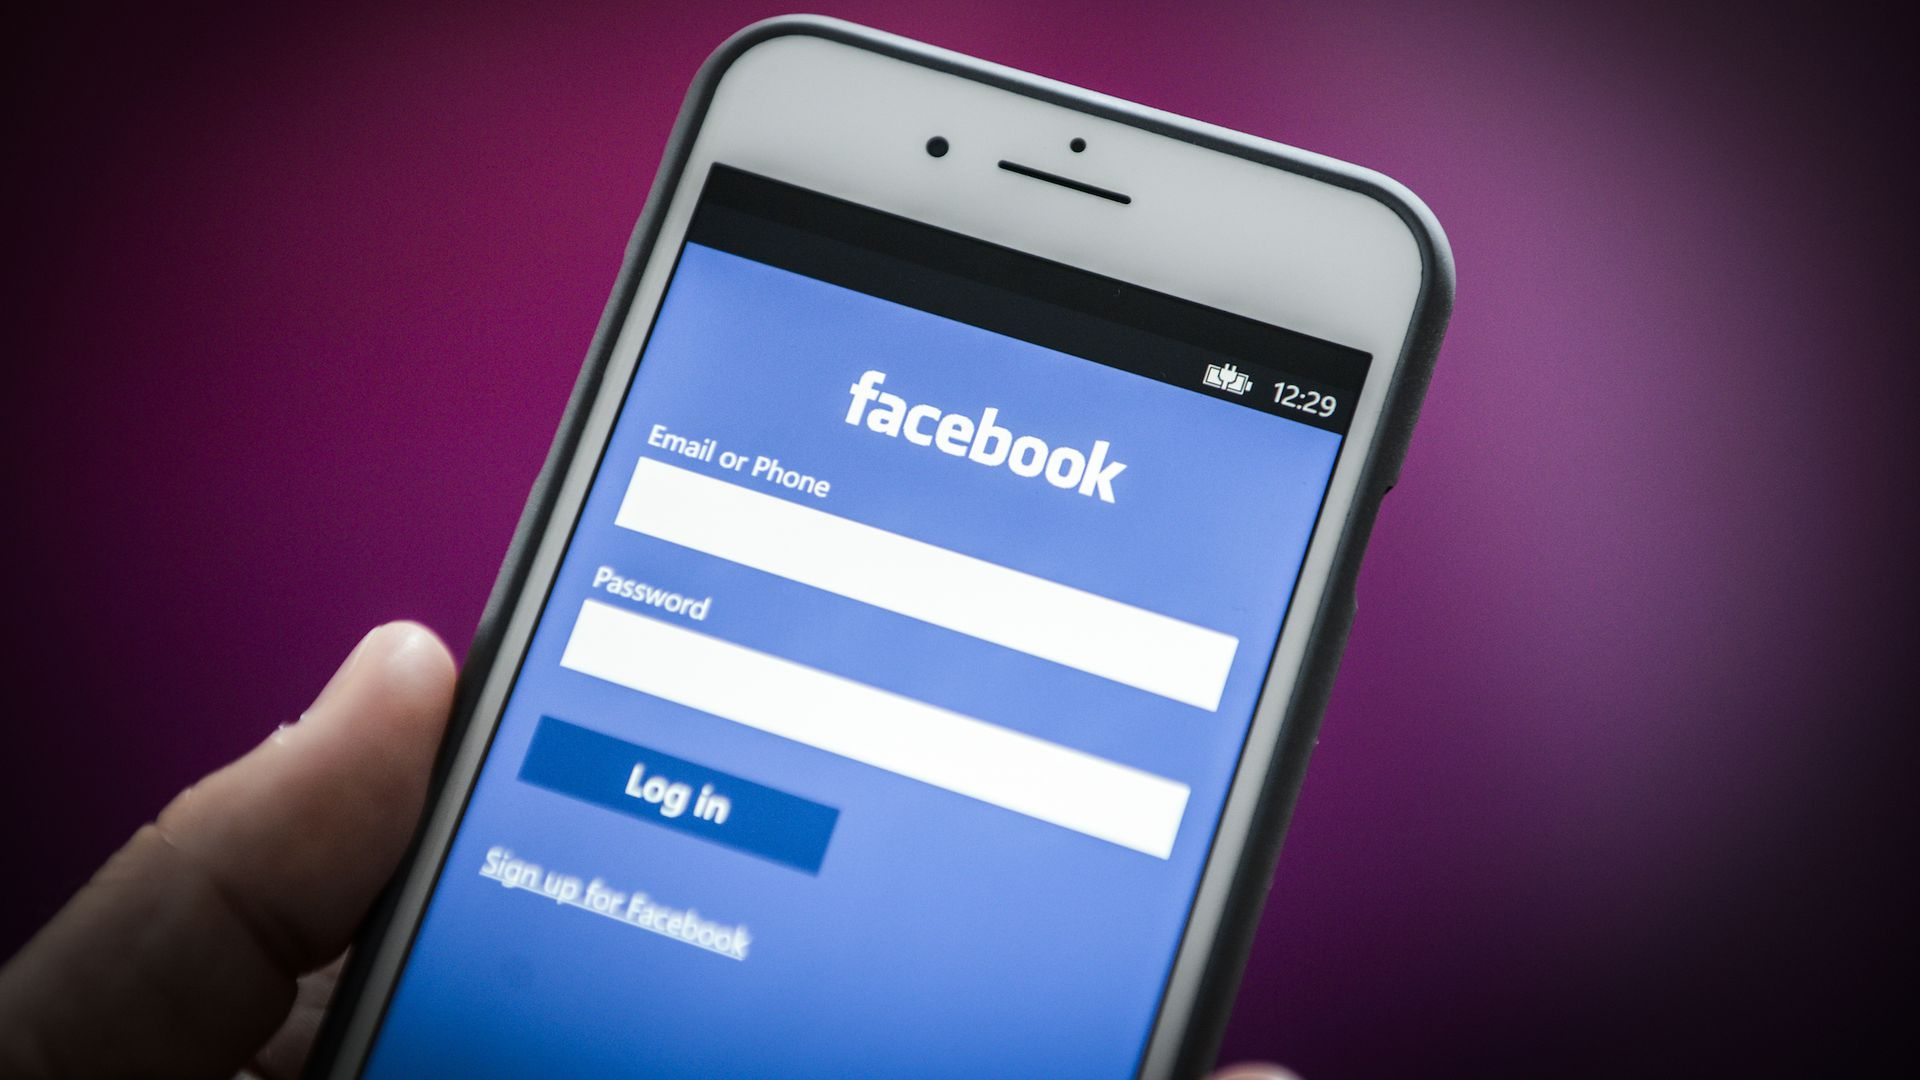 Facebook login screen on phone